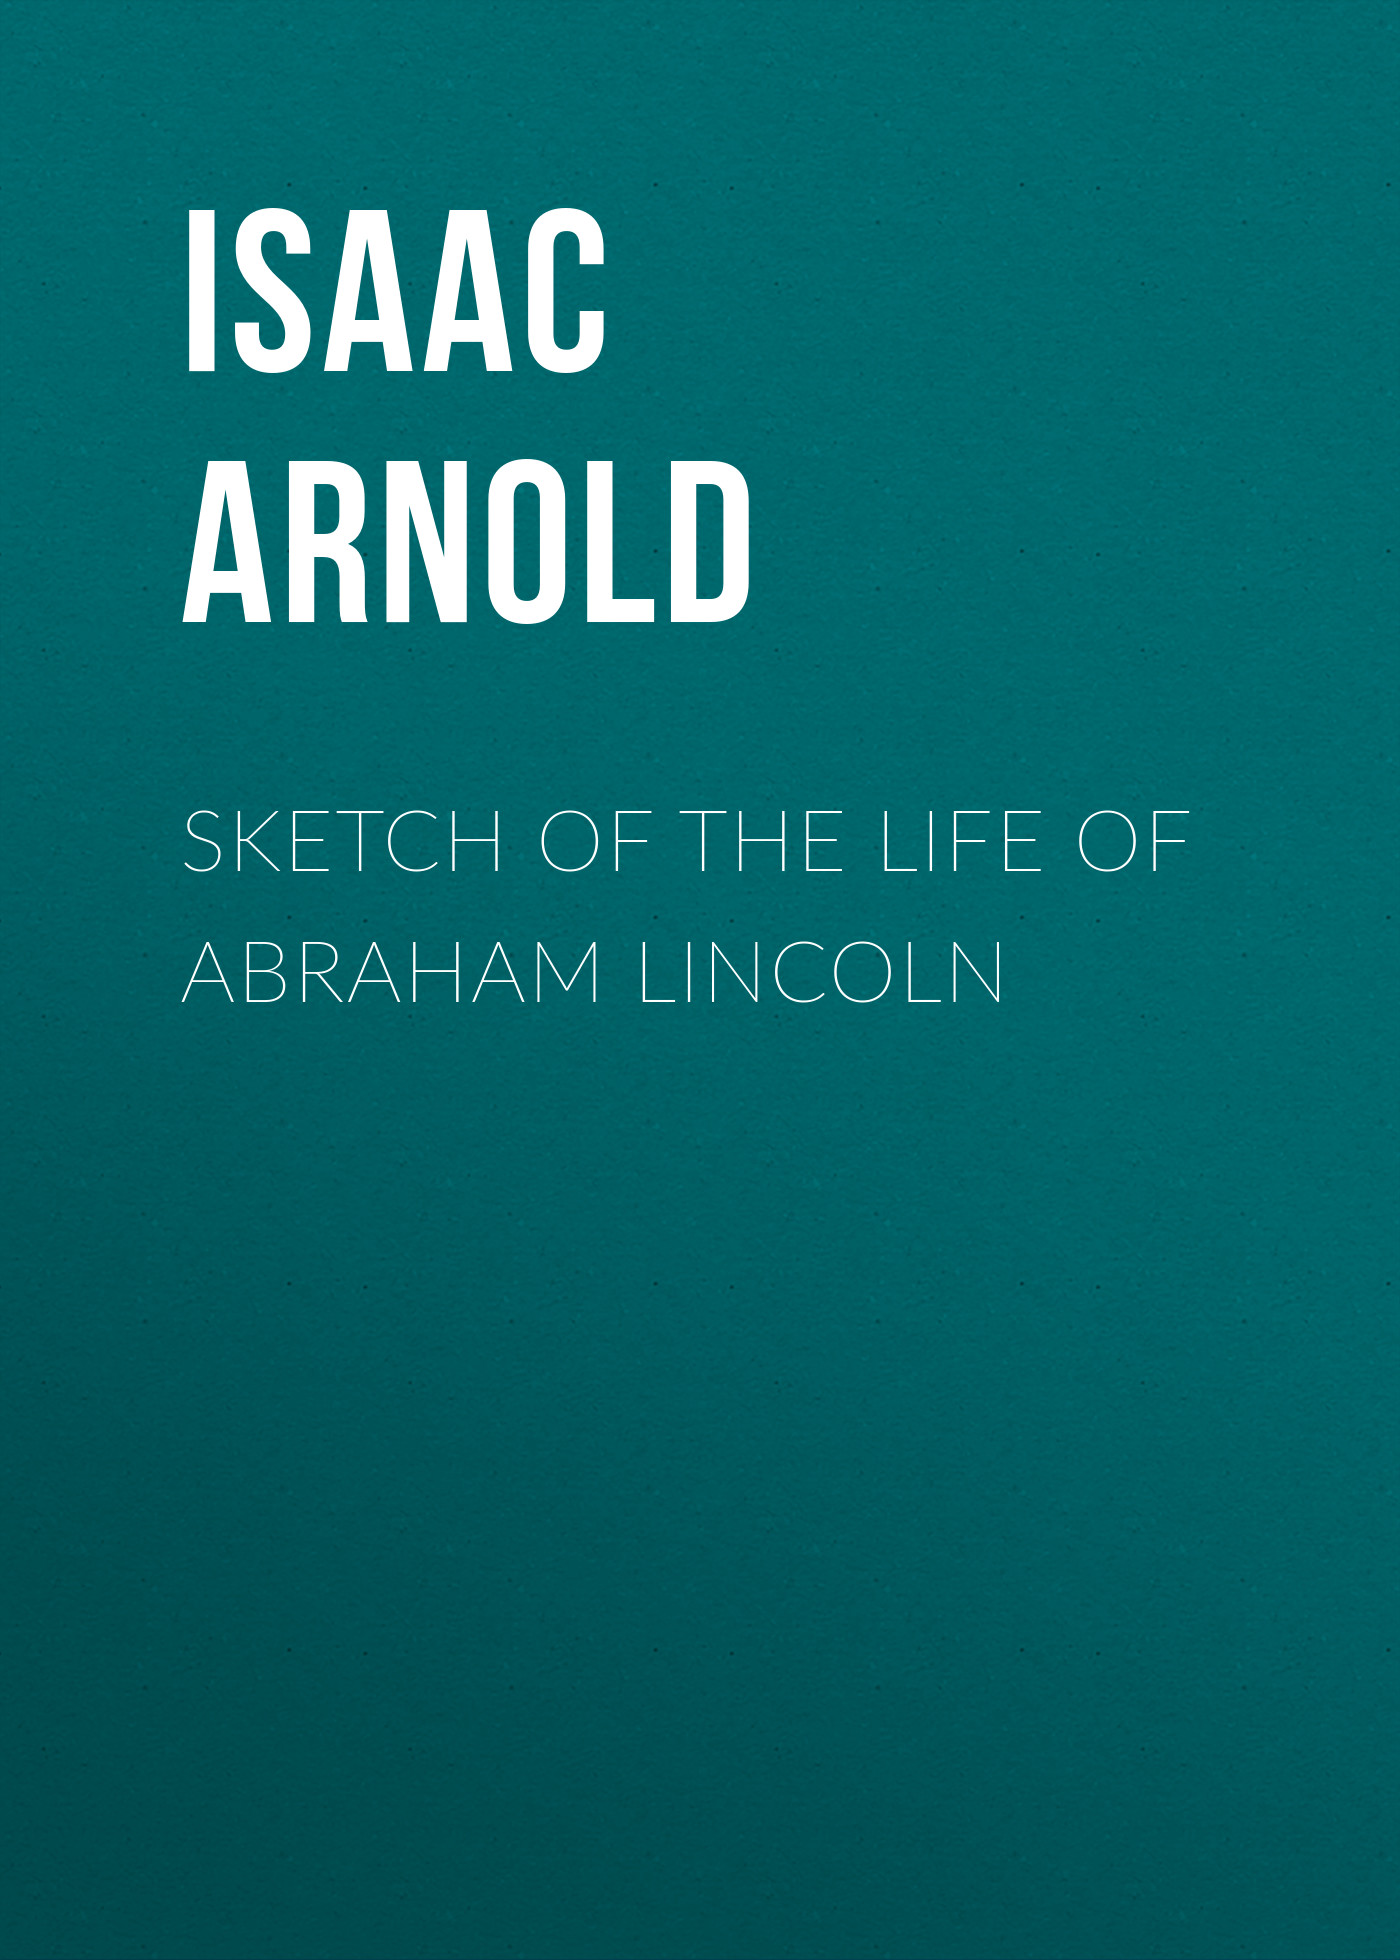 Arnold Isaac N. Sketch of the life of Abraham Lincoln